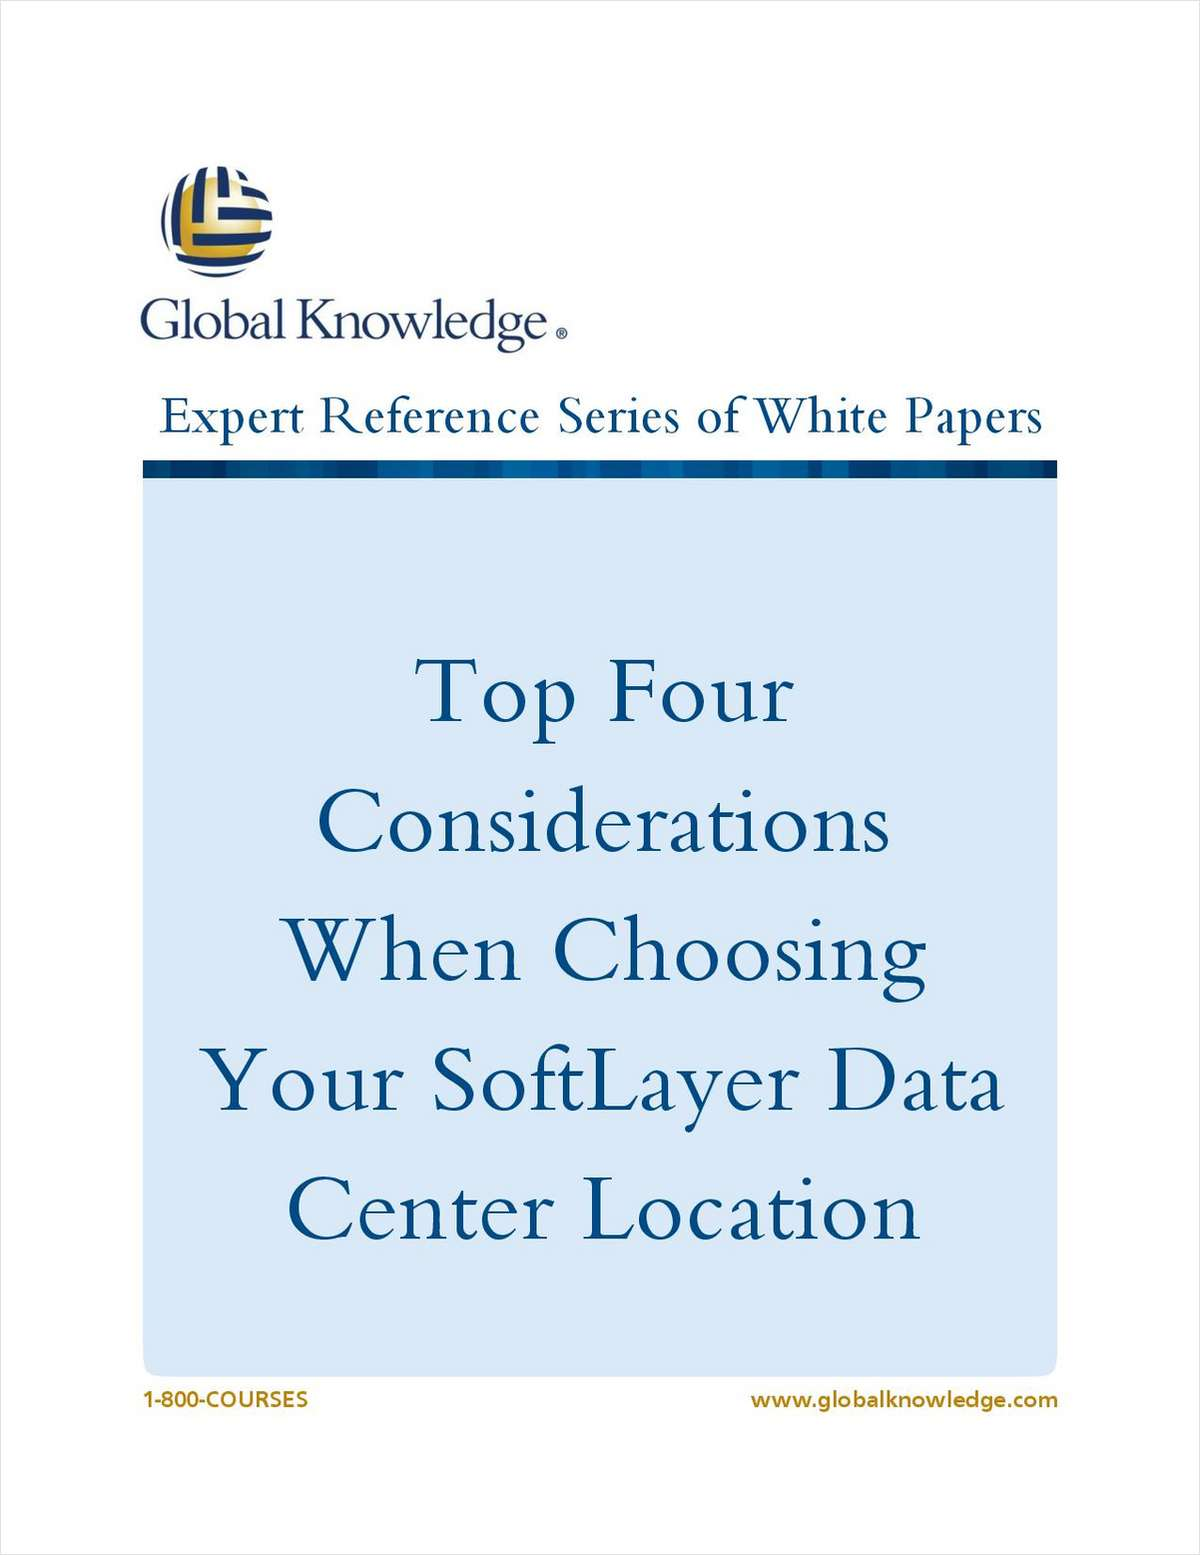 Top Four Considerations When Choosing Your SoftLayer Data Center Location